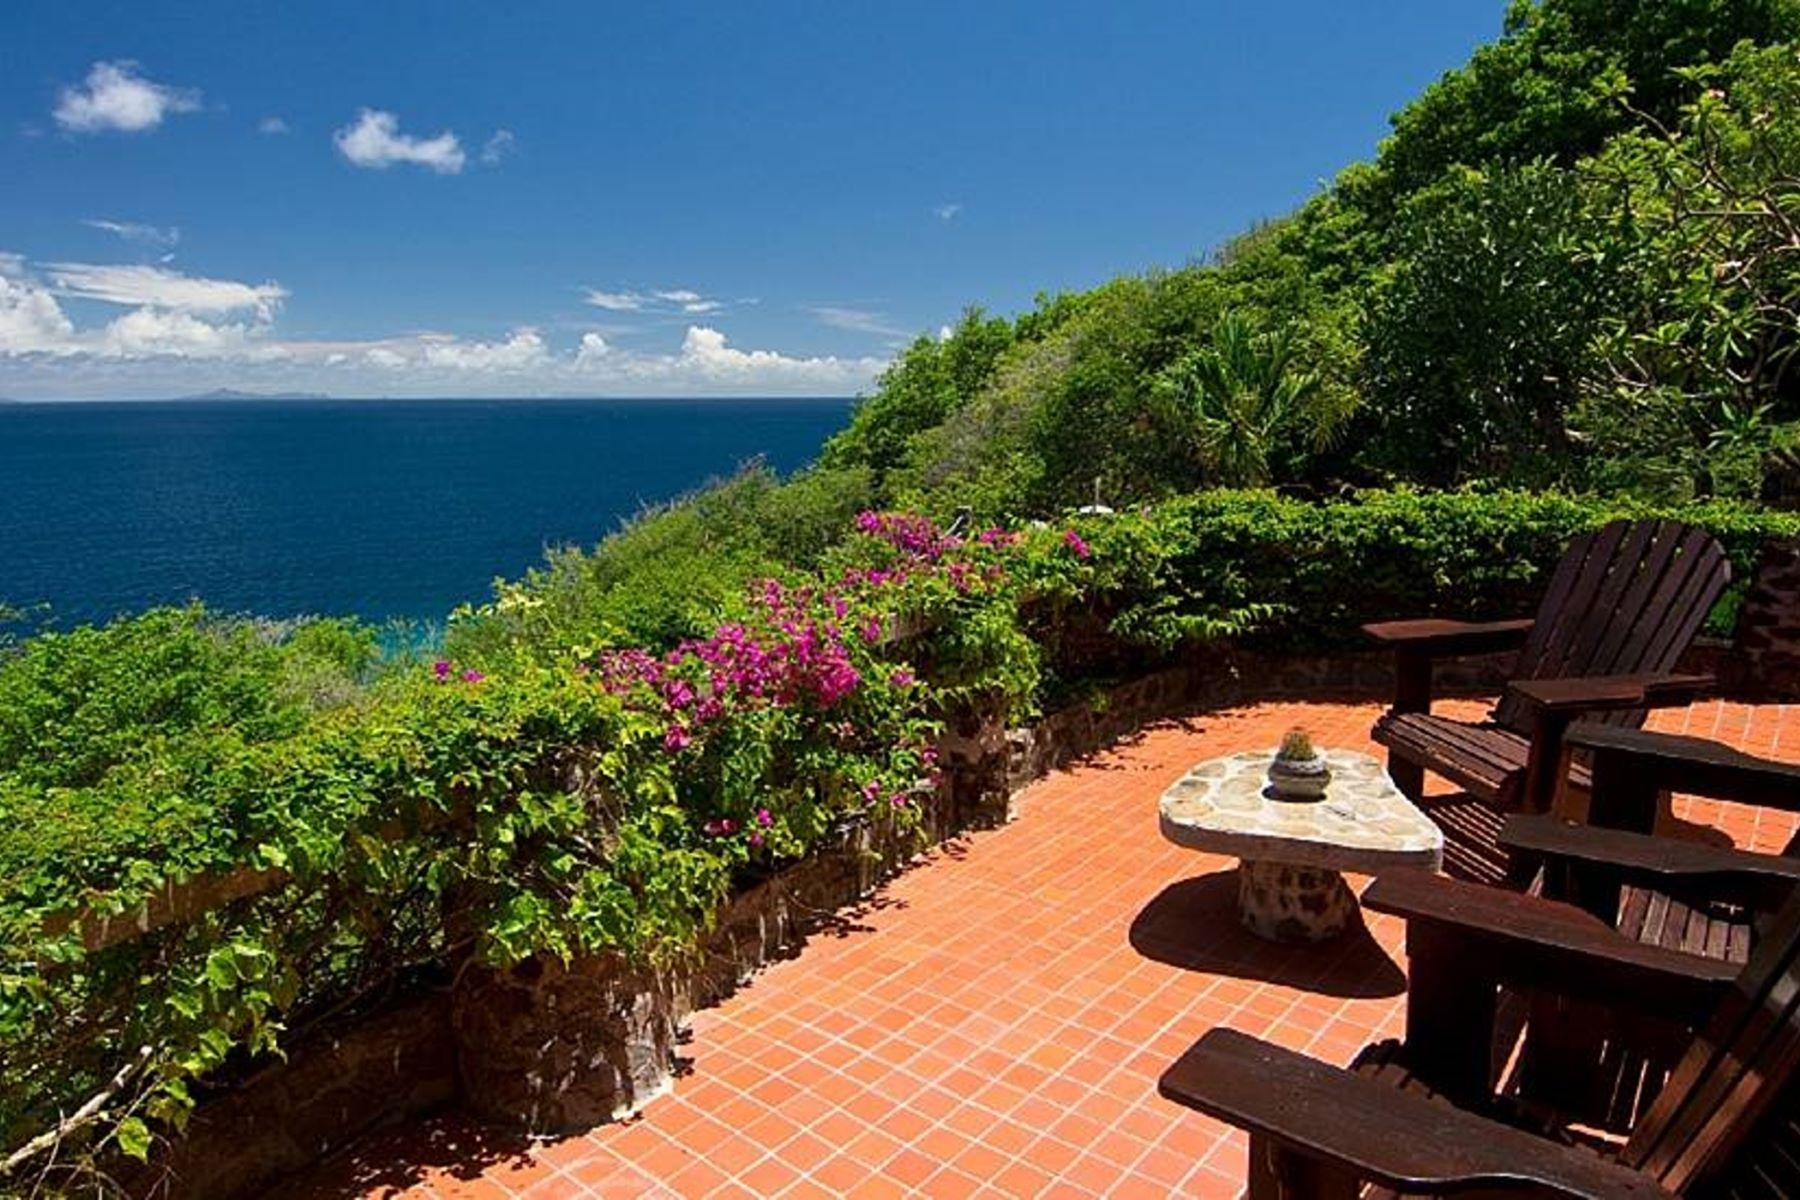 Single Family Home for Sale at Tranquility at Moon Hole Bequia, Saint Vincent And The Grenadines